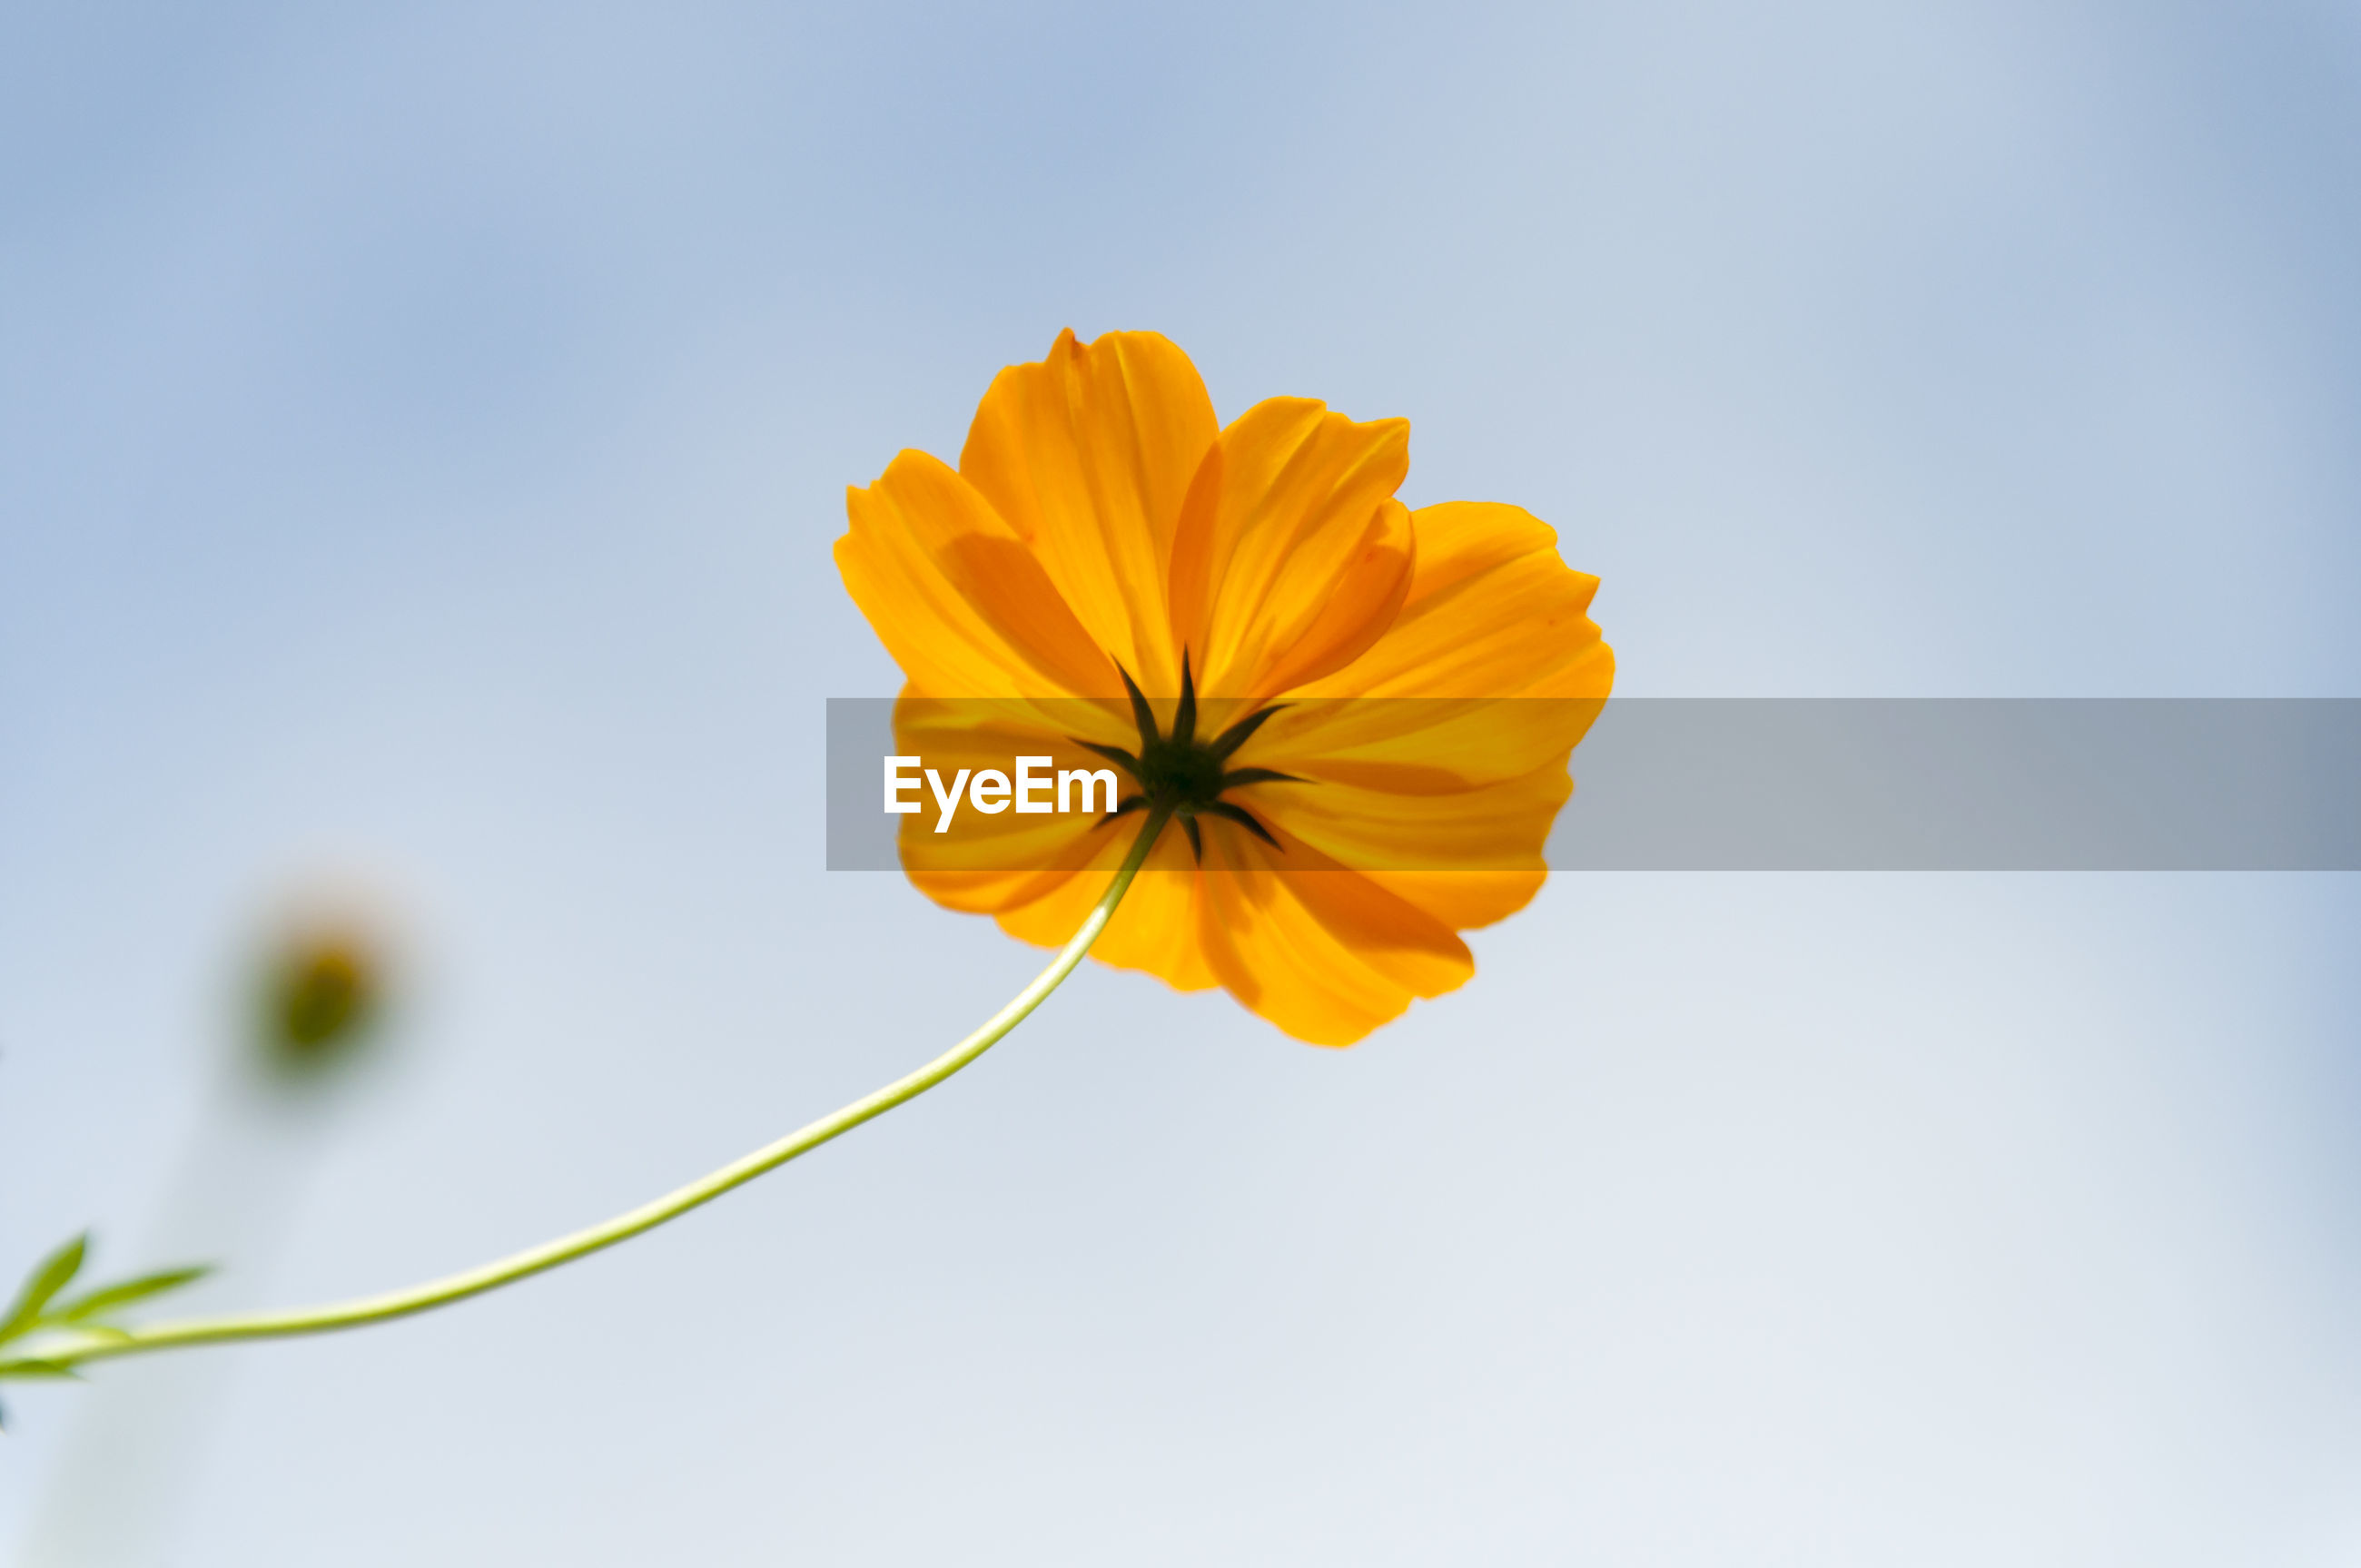 CLOSE-UP OF YELLOW COSMOS FLOWER BLOOMING AGAINST SKY